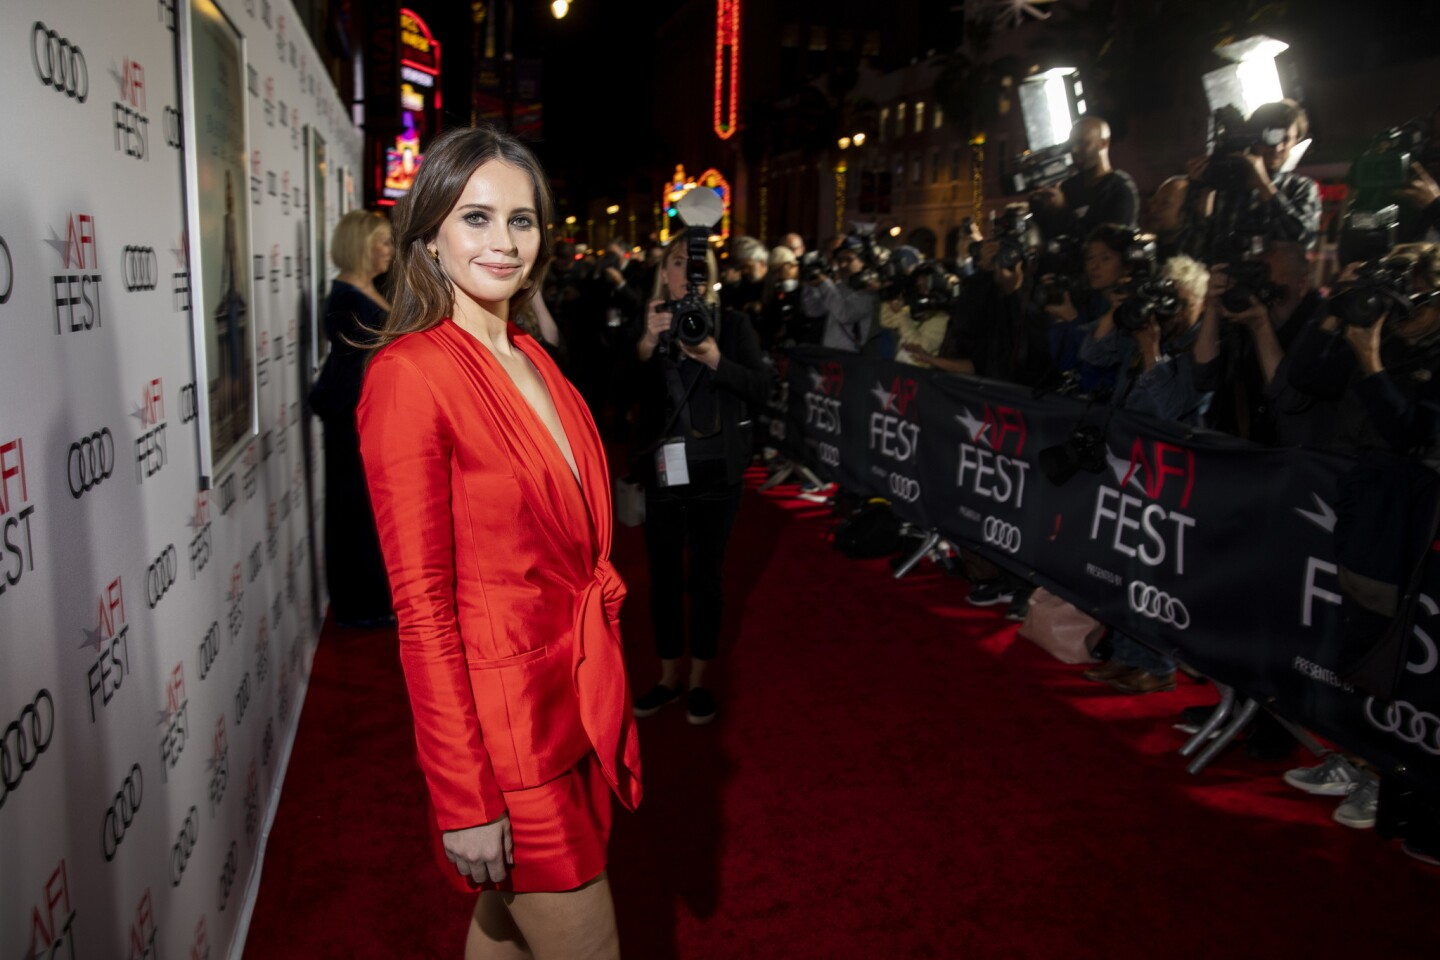 """Actress Felicity Jones on the red carpet of """"On The Basis of Sex"""" at the opening-night gala of AFI Fest 2018 at the TCL Chinese Theatre in Hollywood on Thursday. Jones portrays Supreme Court Justice Ruth Bader Ginsburg in the origin story of Ginsburg."""